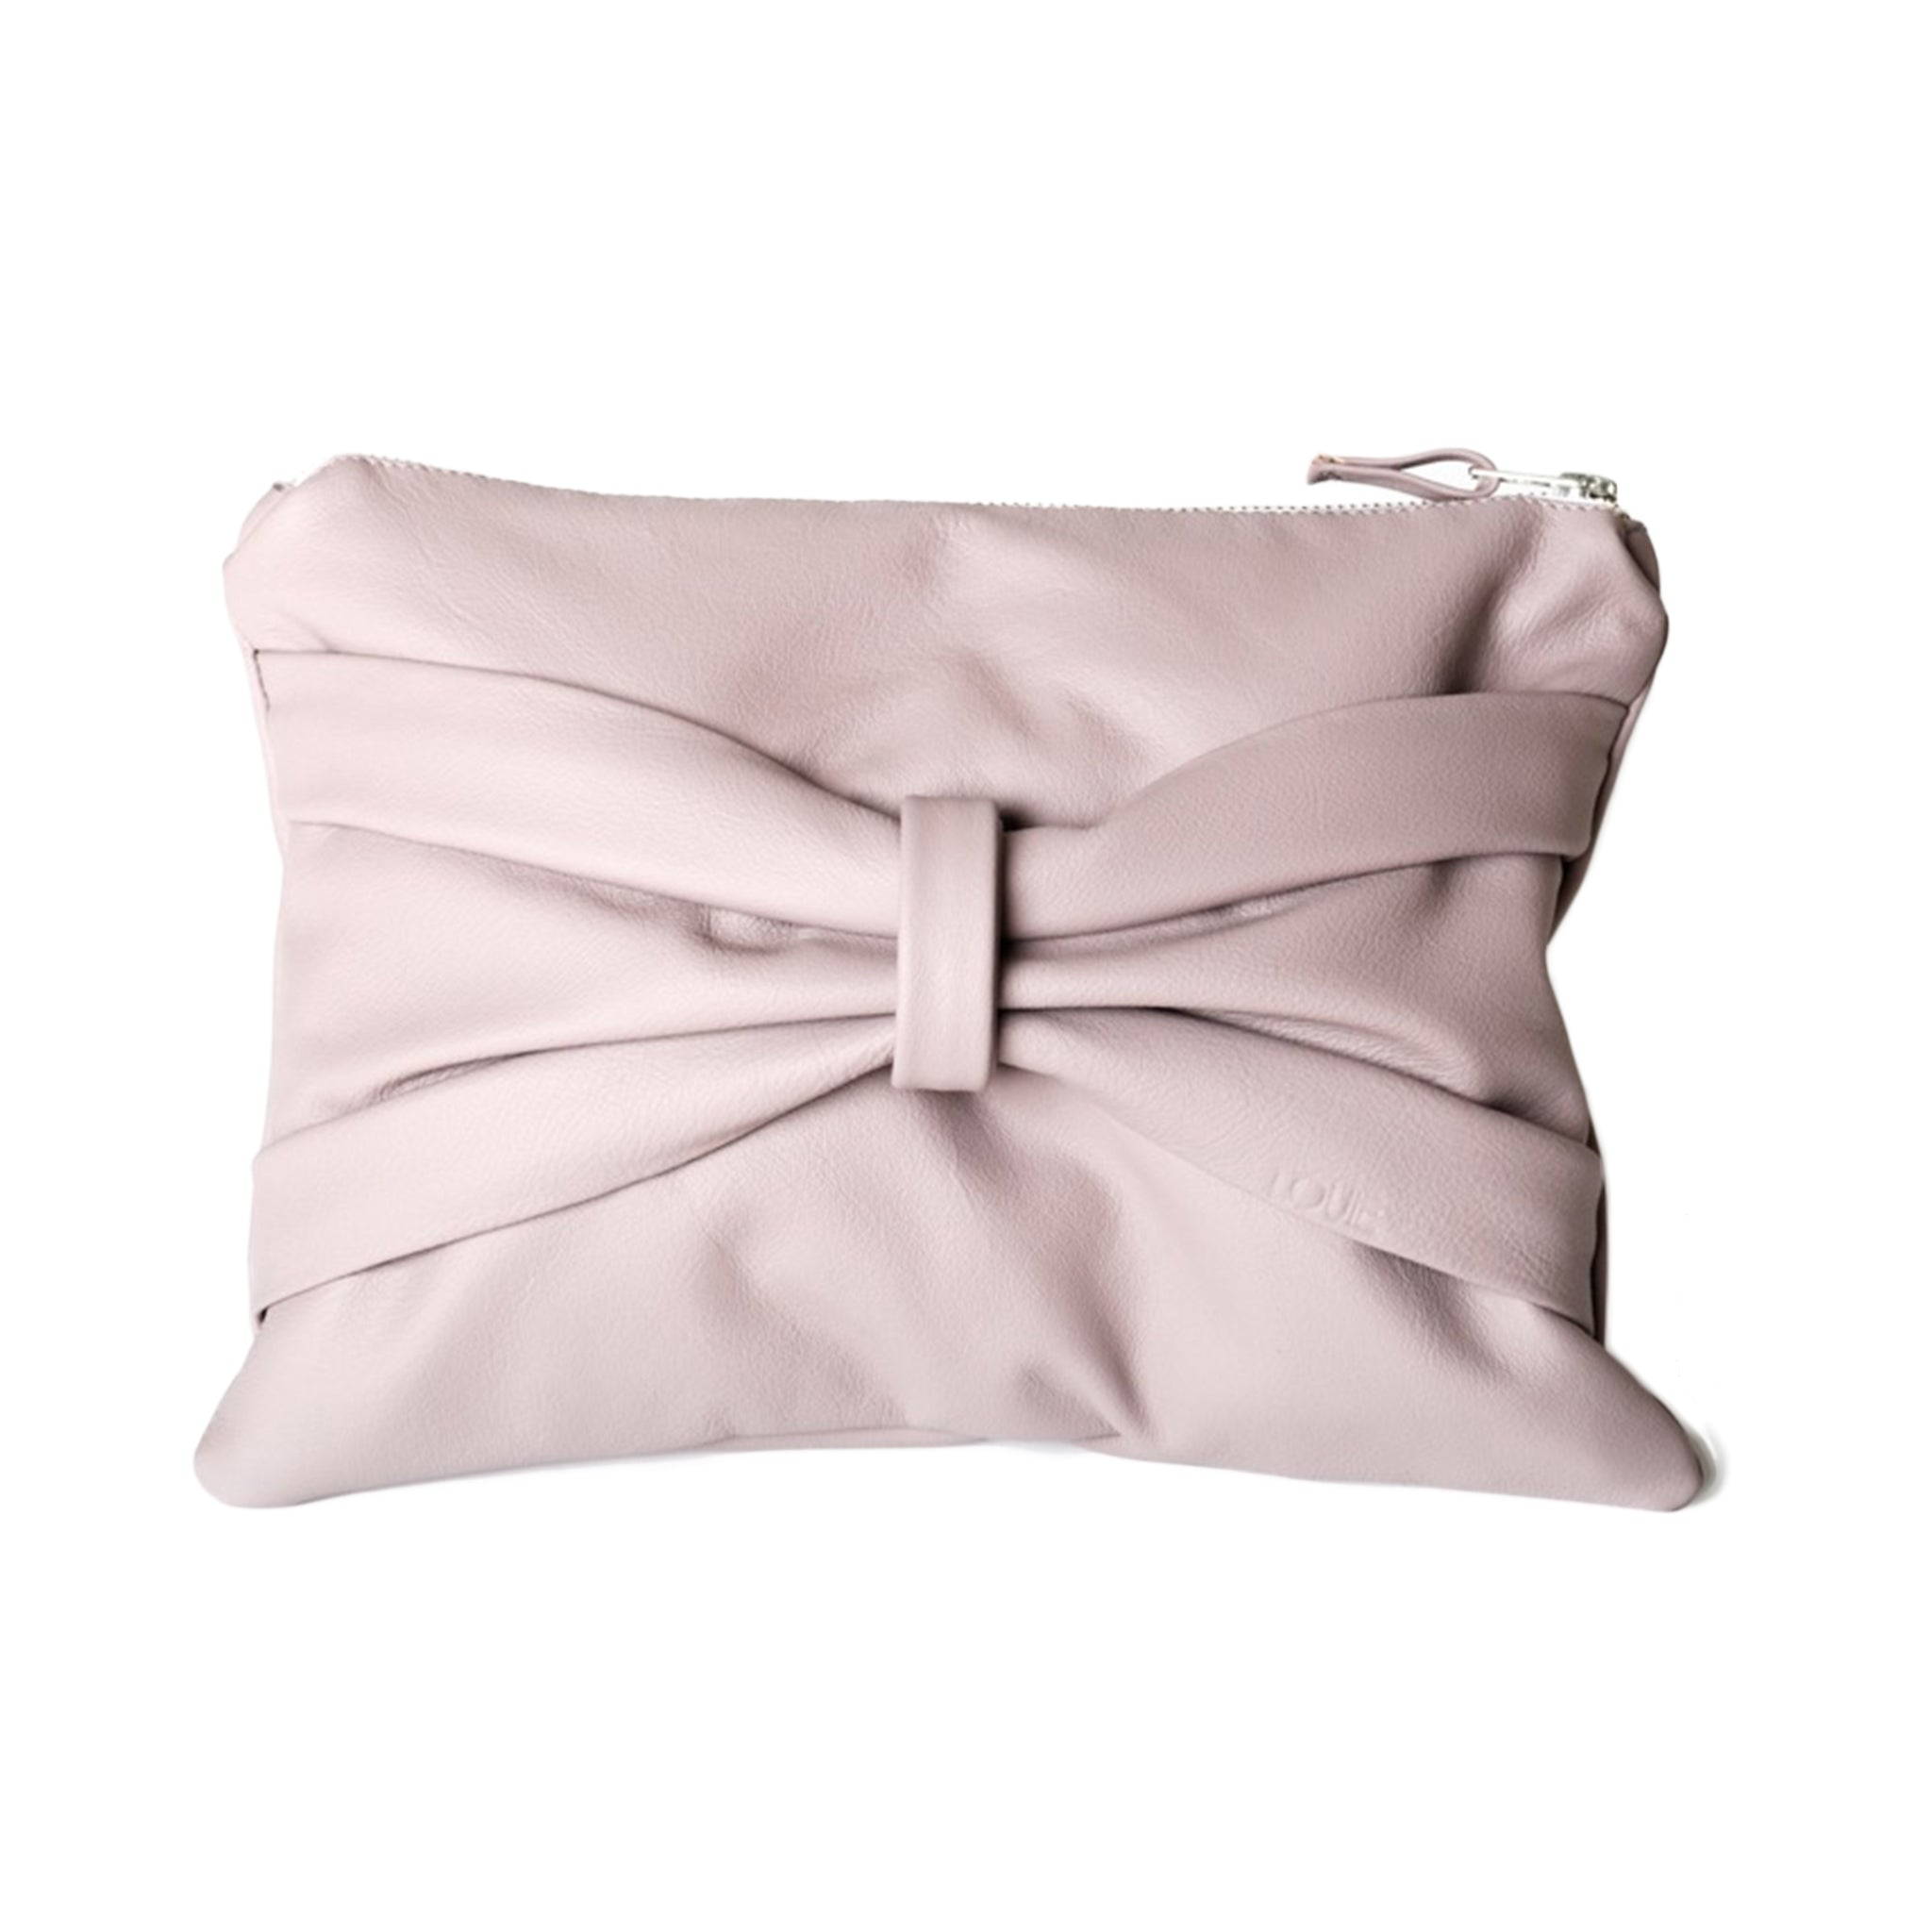 Louie Couture's Bow clutch is handmade in Melbourne using premium Italian cow hide leather in ombretto and is fully lined. It has a zip closure, pockets inside and plenty of space for your belongings. The clutch is completed with a decorative bow strap on the front. Length 30cm x height 22cm x width 2cm.